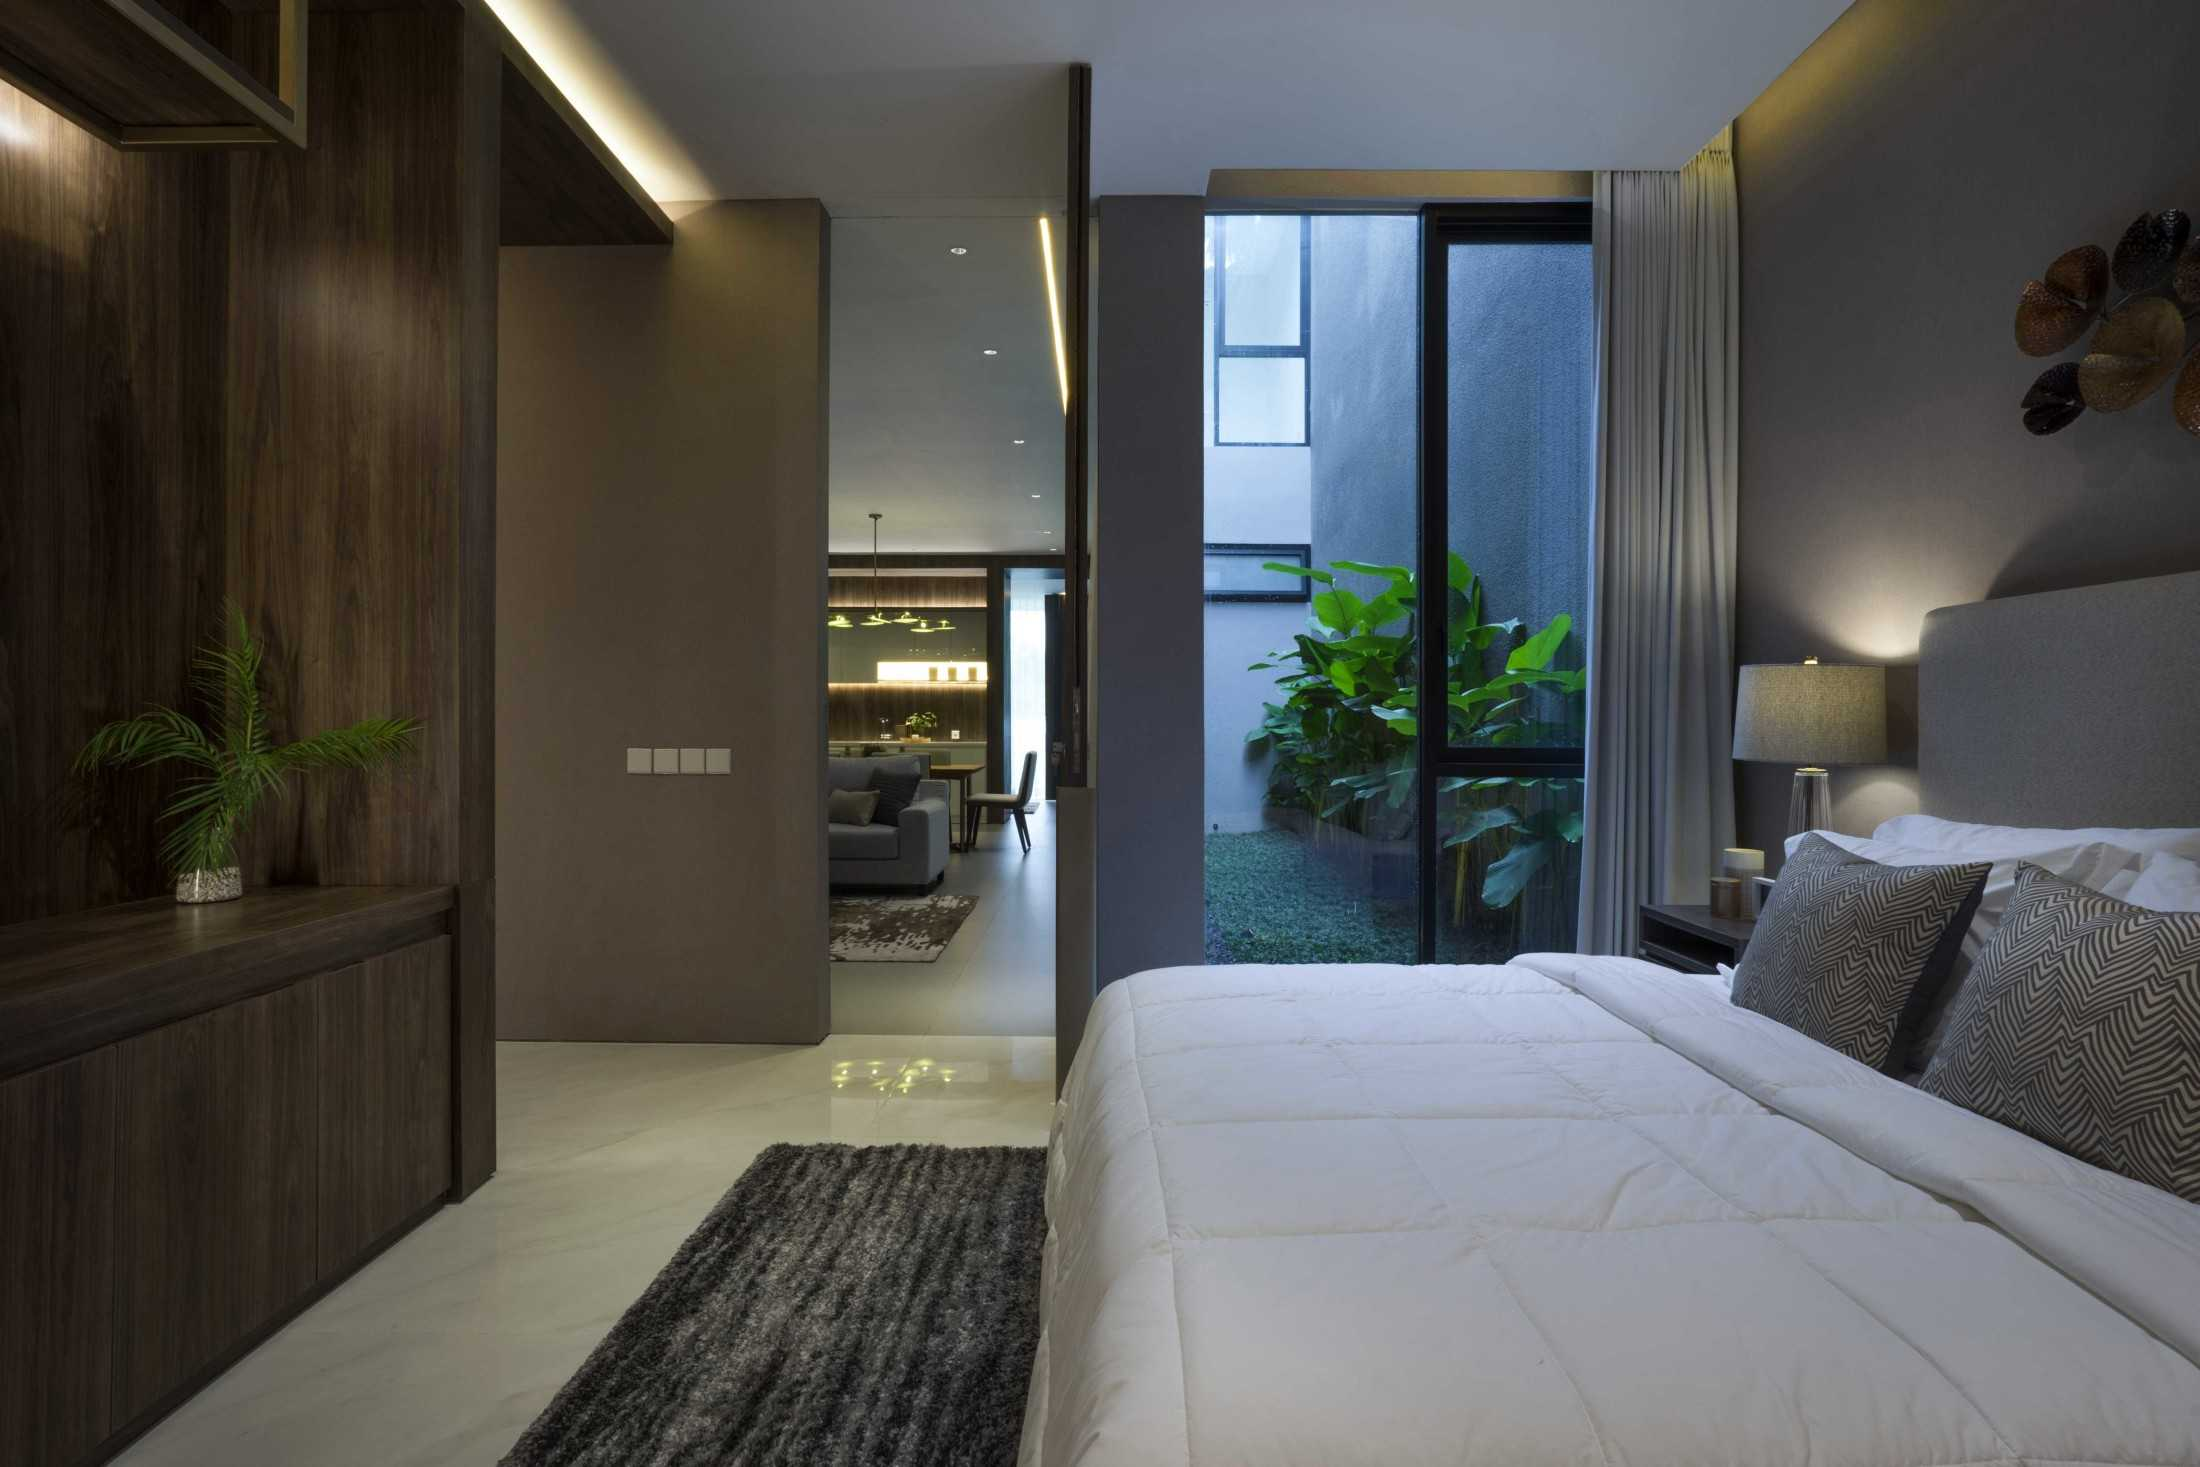 Simple Projects Architecture 'hhh' House Surabaya, Kota Sby, Jawa Timur, Indonesia  Simple-Projects-Architecture-Hhh-House  75084